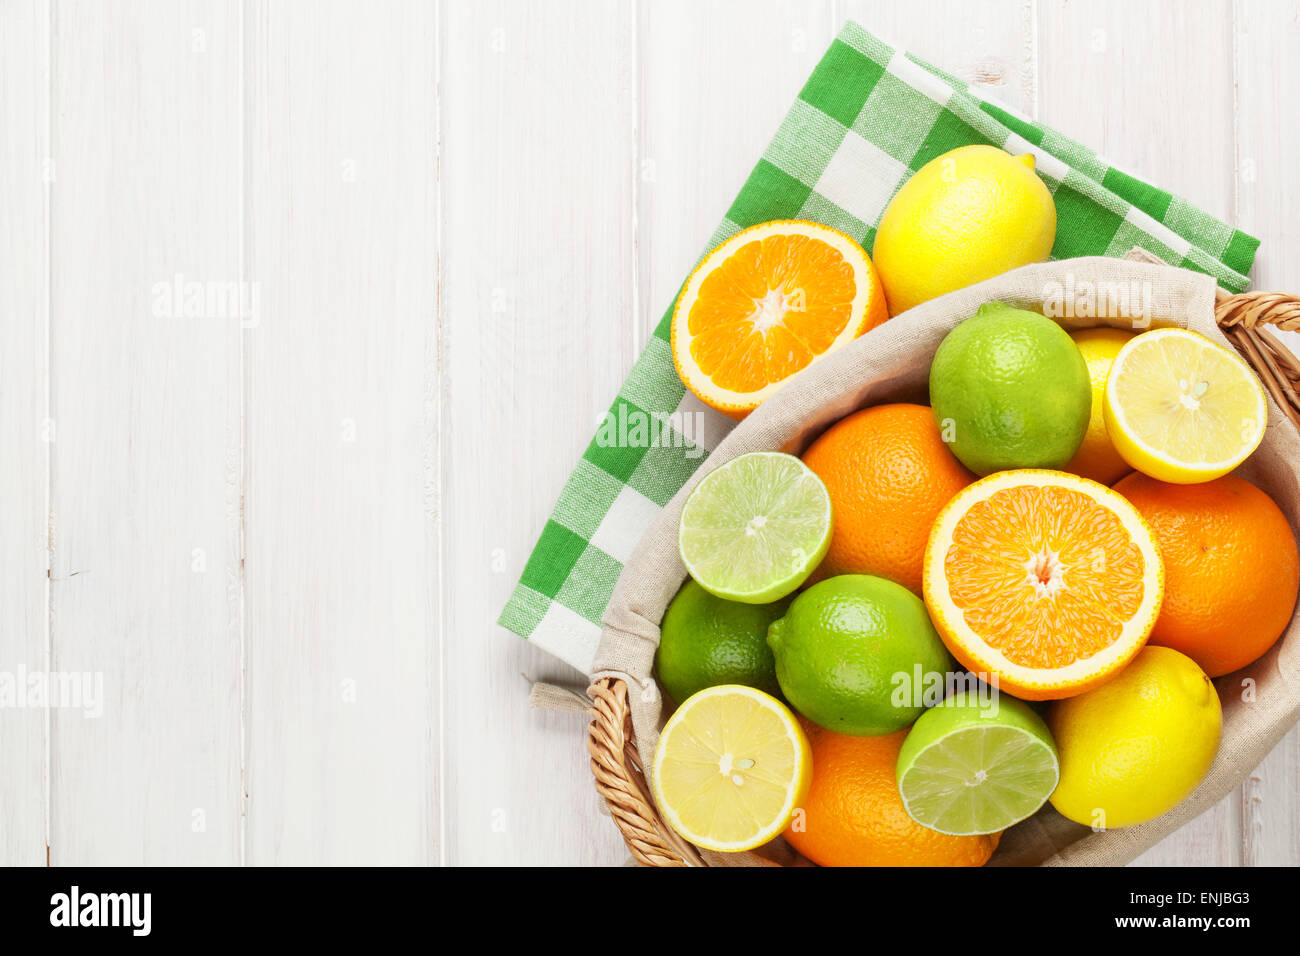 Citrus fruits in basket. Oranges, limes and lemons. Over white wood table background with copy space - Stock Image